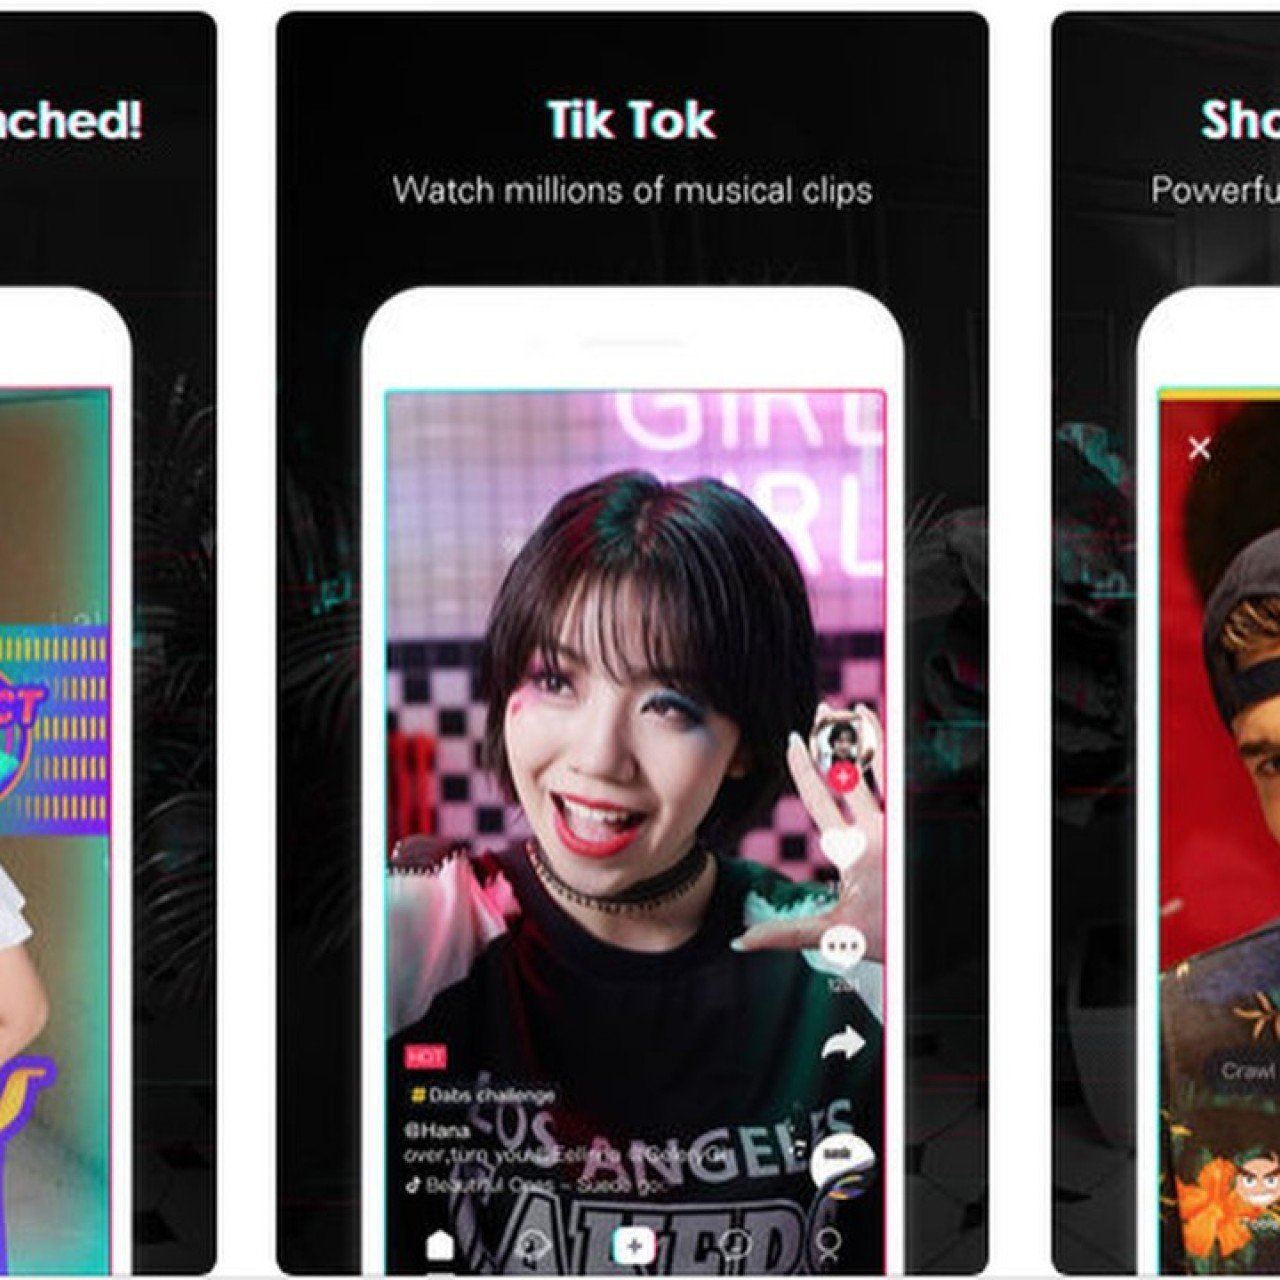 Tik Tok hits 500 million global monthly active users as